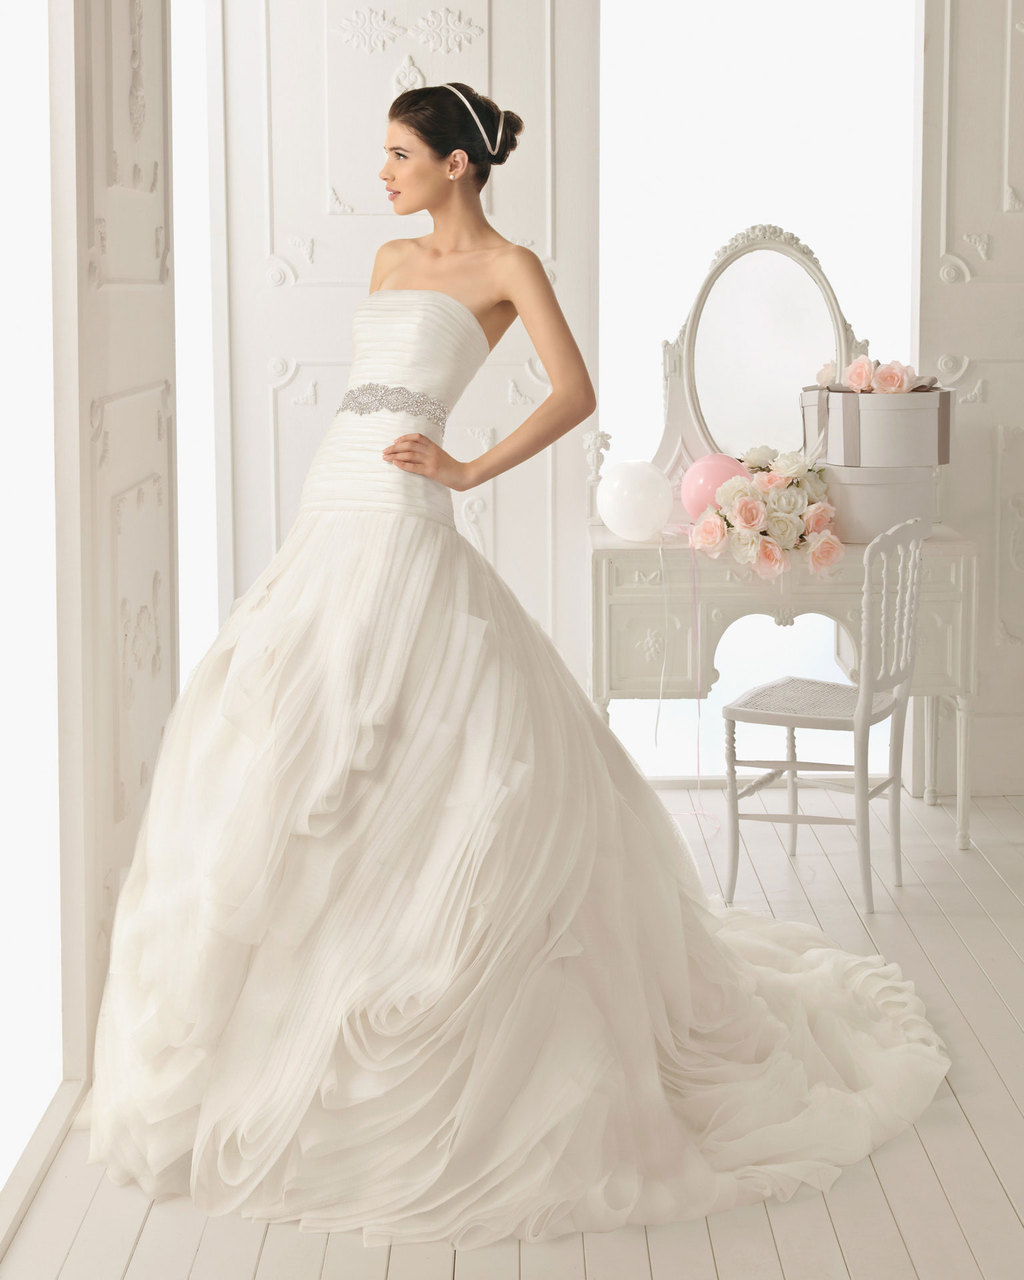 2013-wedding-dress-aire-barcelona-bridal-gowns-rupet.full